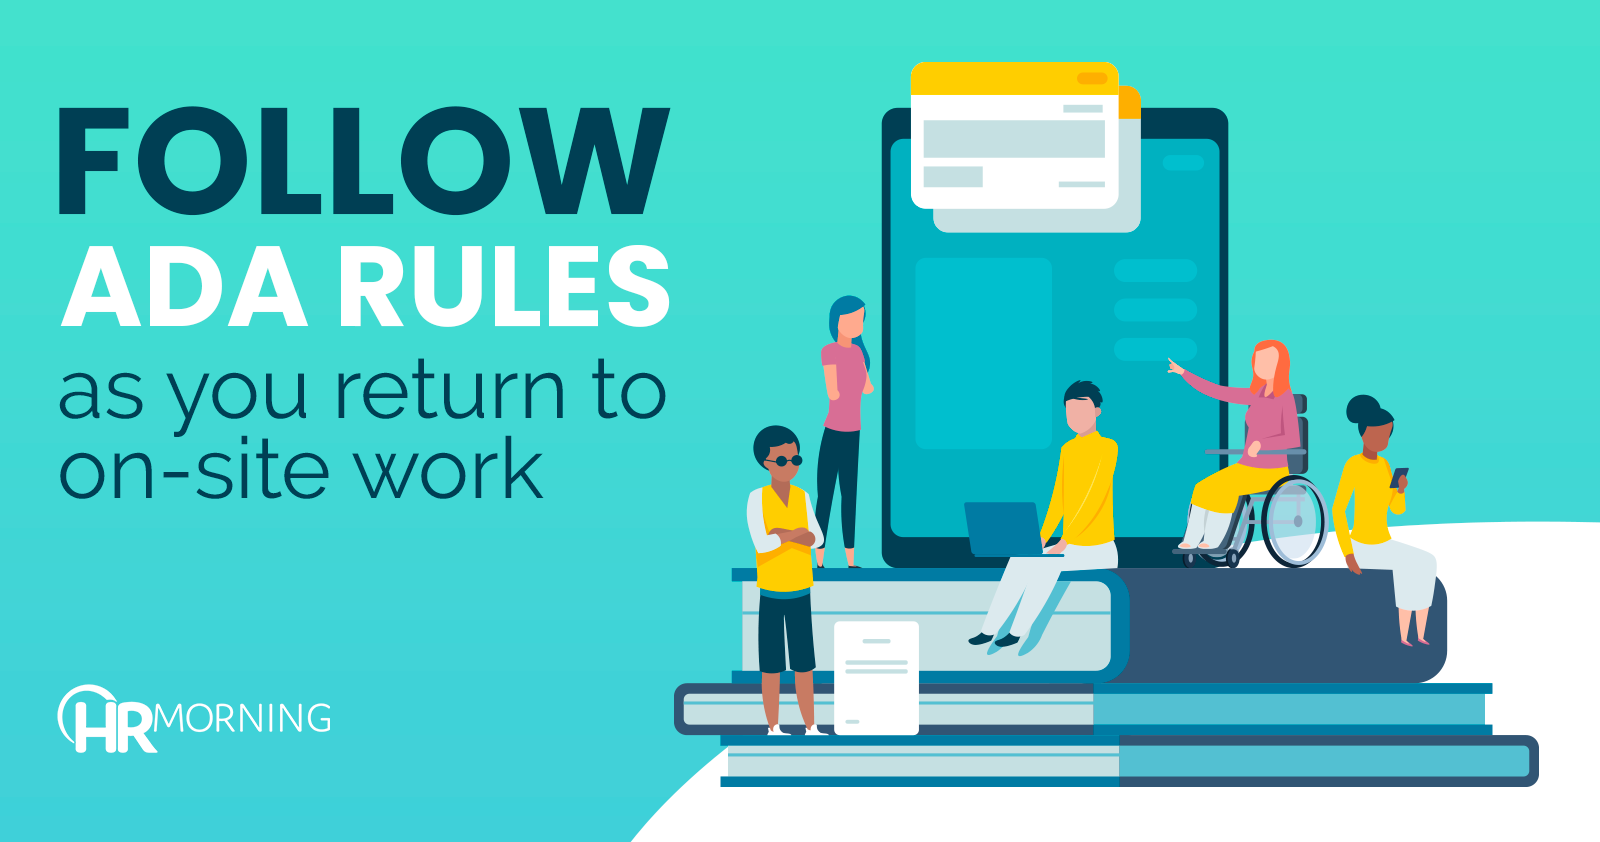 follow ada rules as you return to on-site work